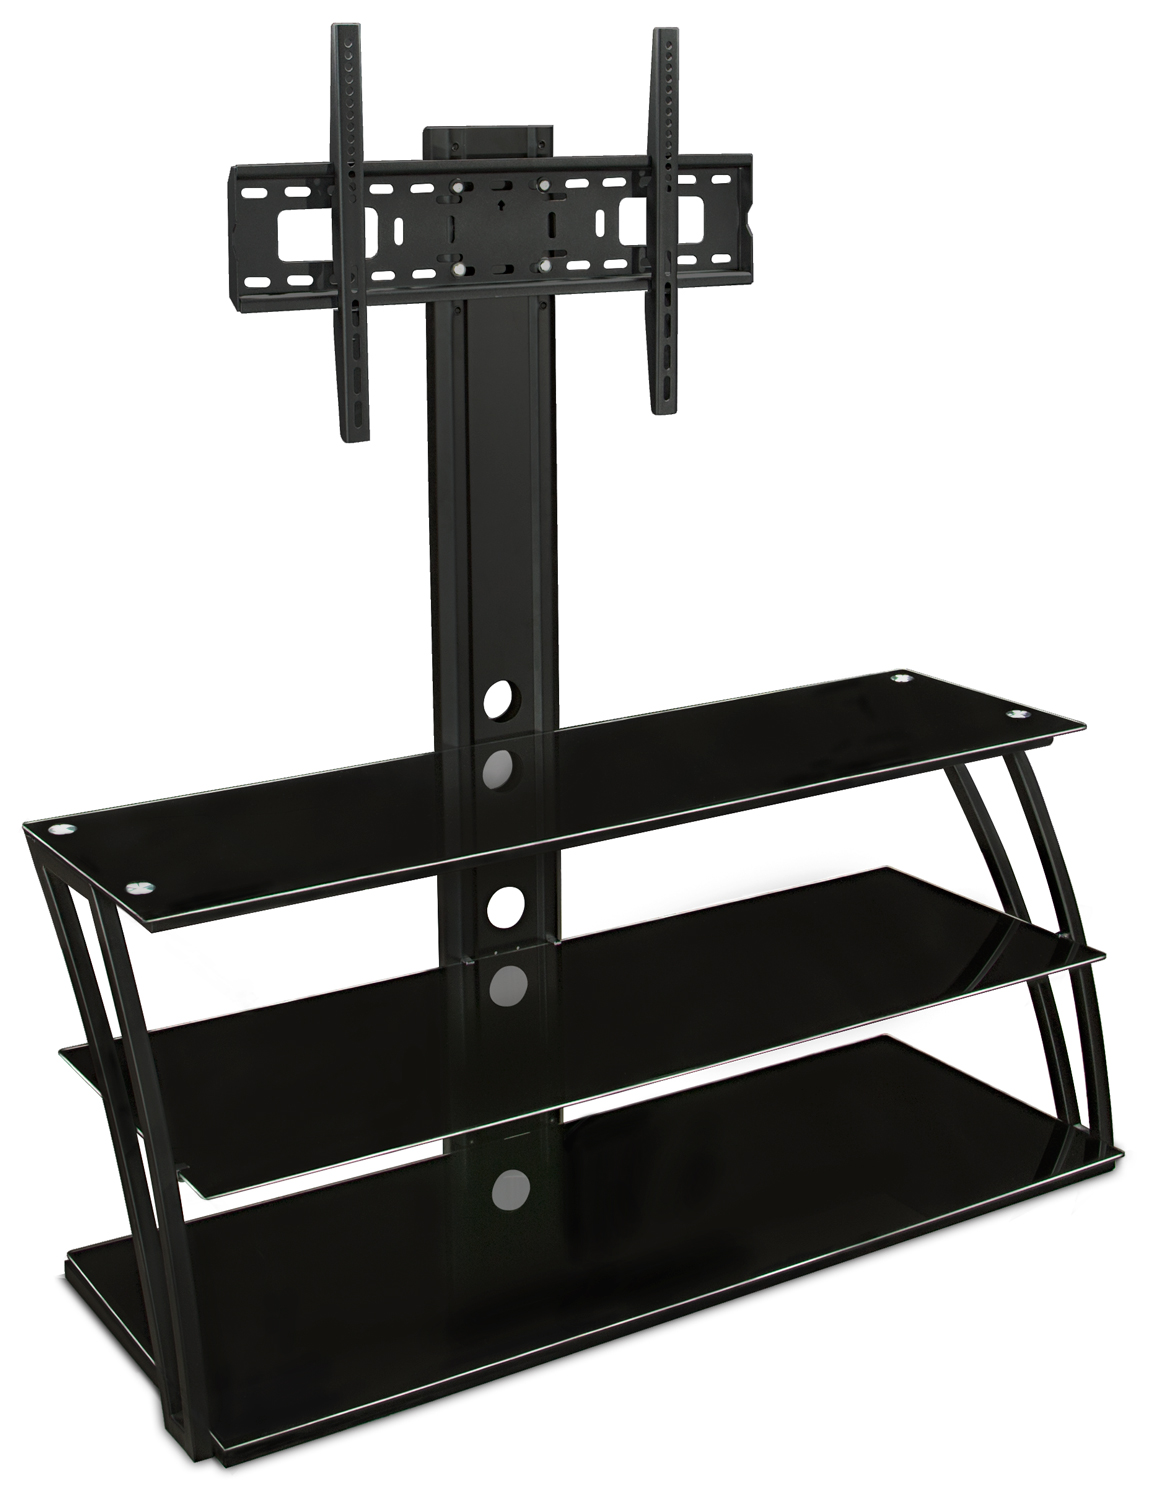 Mount It Tv Stand With Mount And Storage Shelves Fits 32 To 60